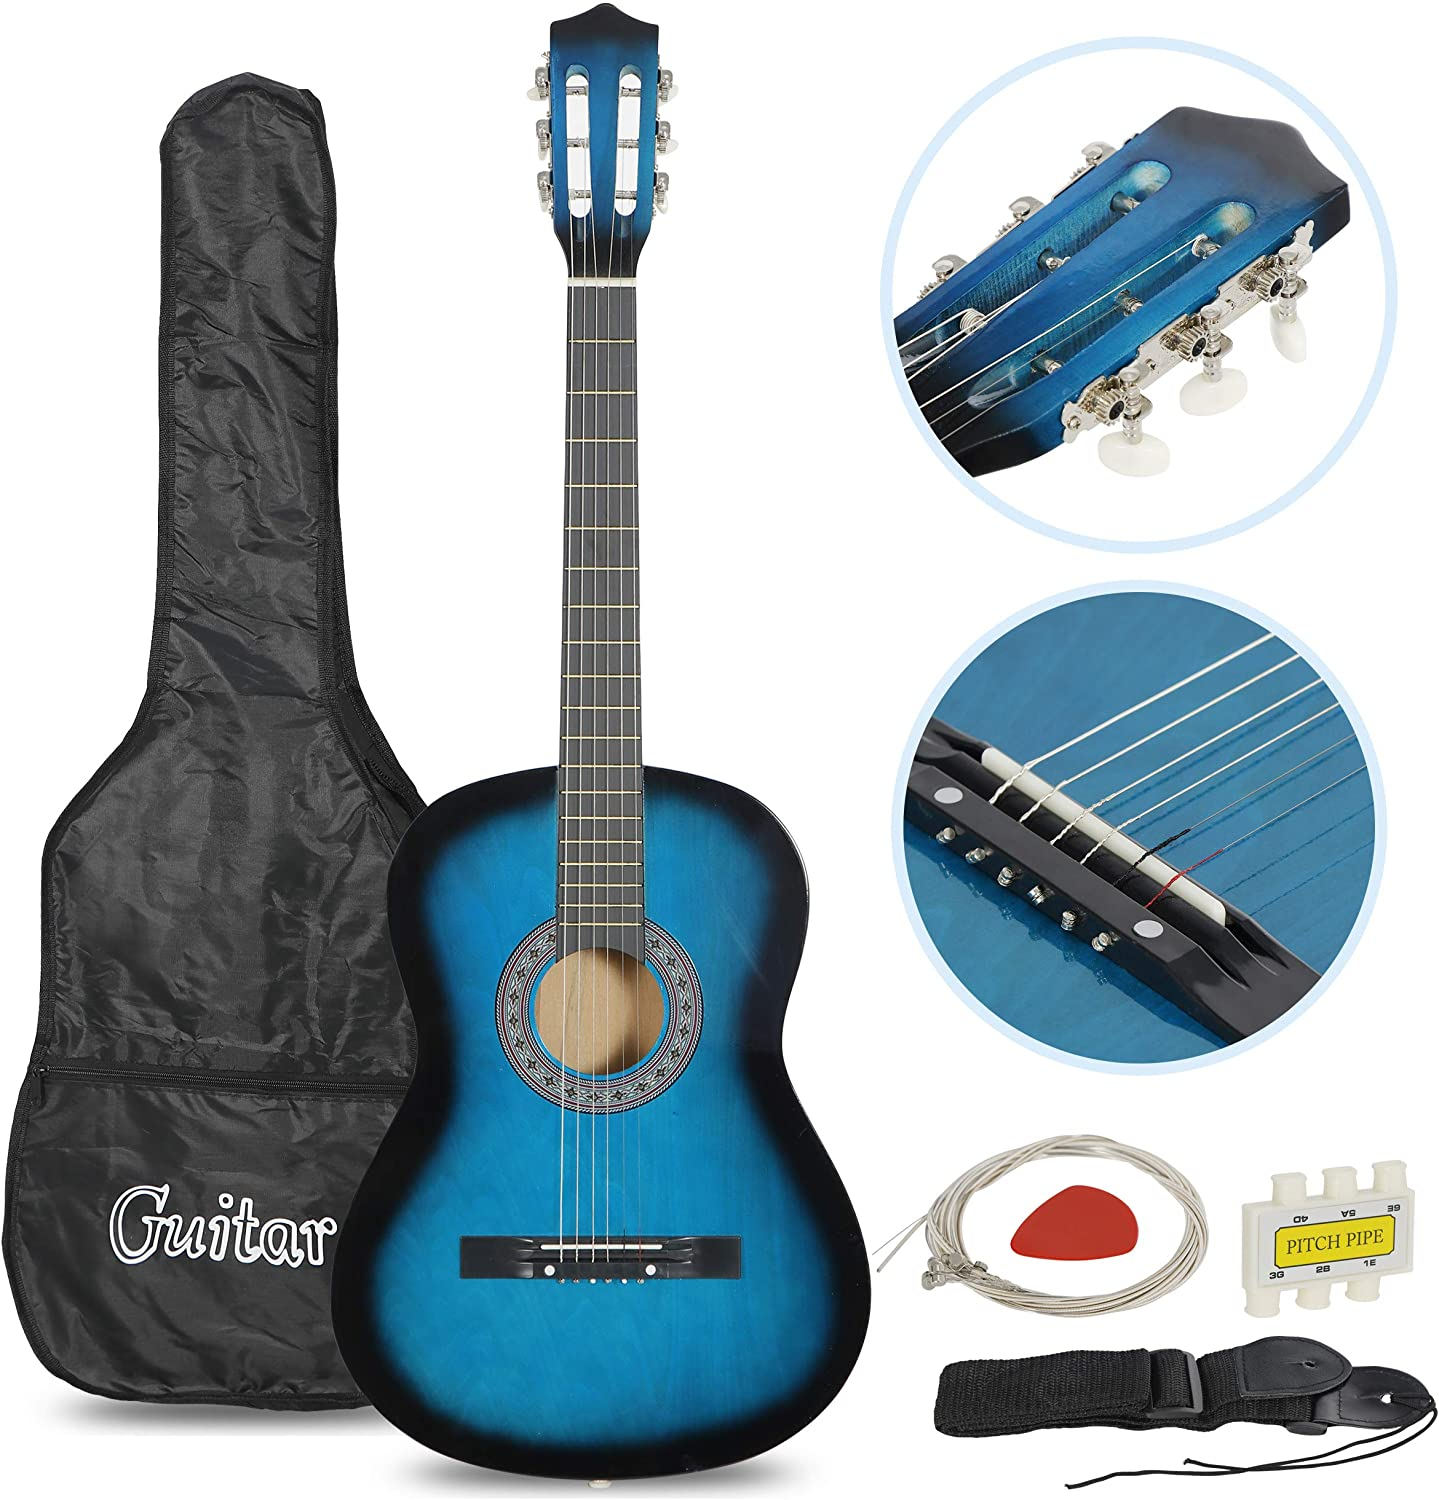 "Smartxchoices Acoustic Guitar for Starter Beginner Music Lovers Kids Gift 38"" 6-String Folk Beginners Acoustic Guitar With Gig bag, Strap, Pitch Pipe and Pick (Blue)"